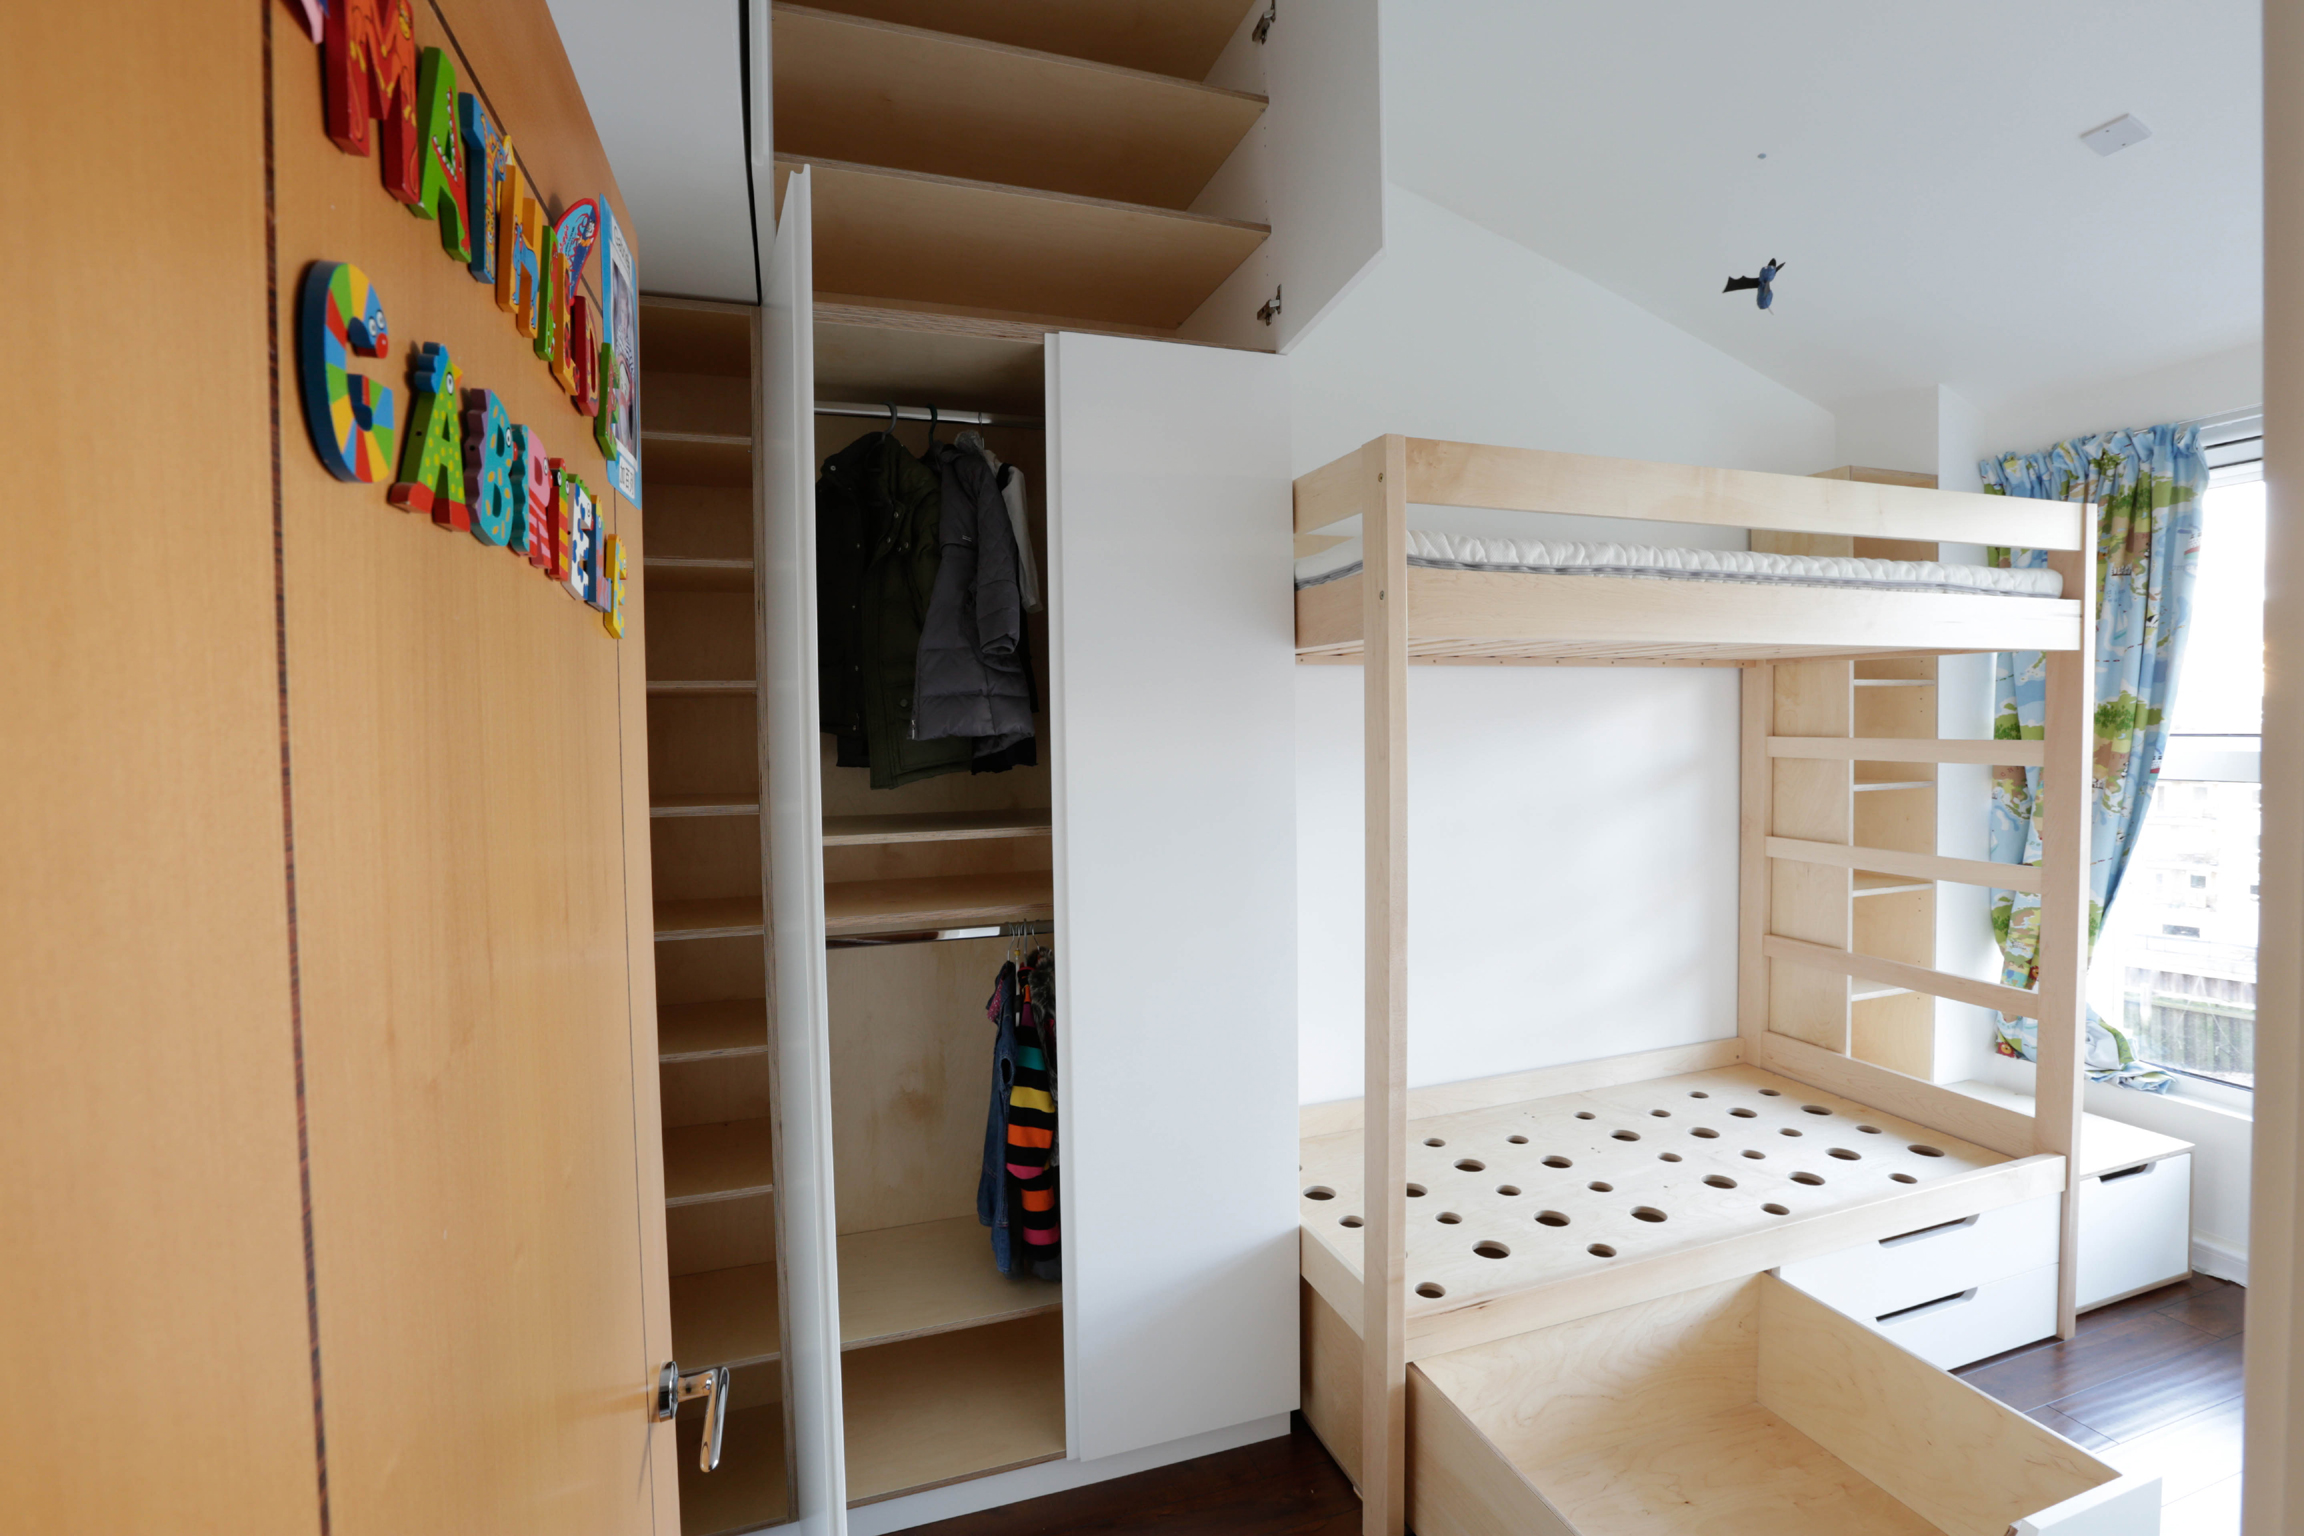 Buck beds made from sustainable sourced softwood, wardrobe cupboards and draws